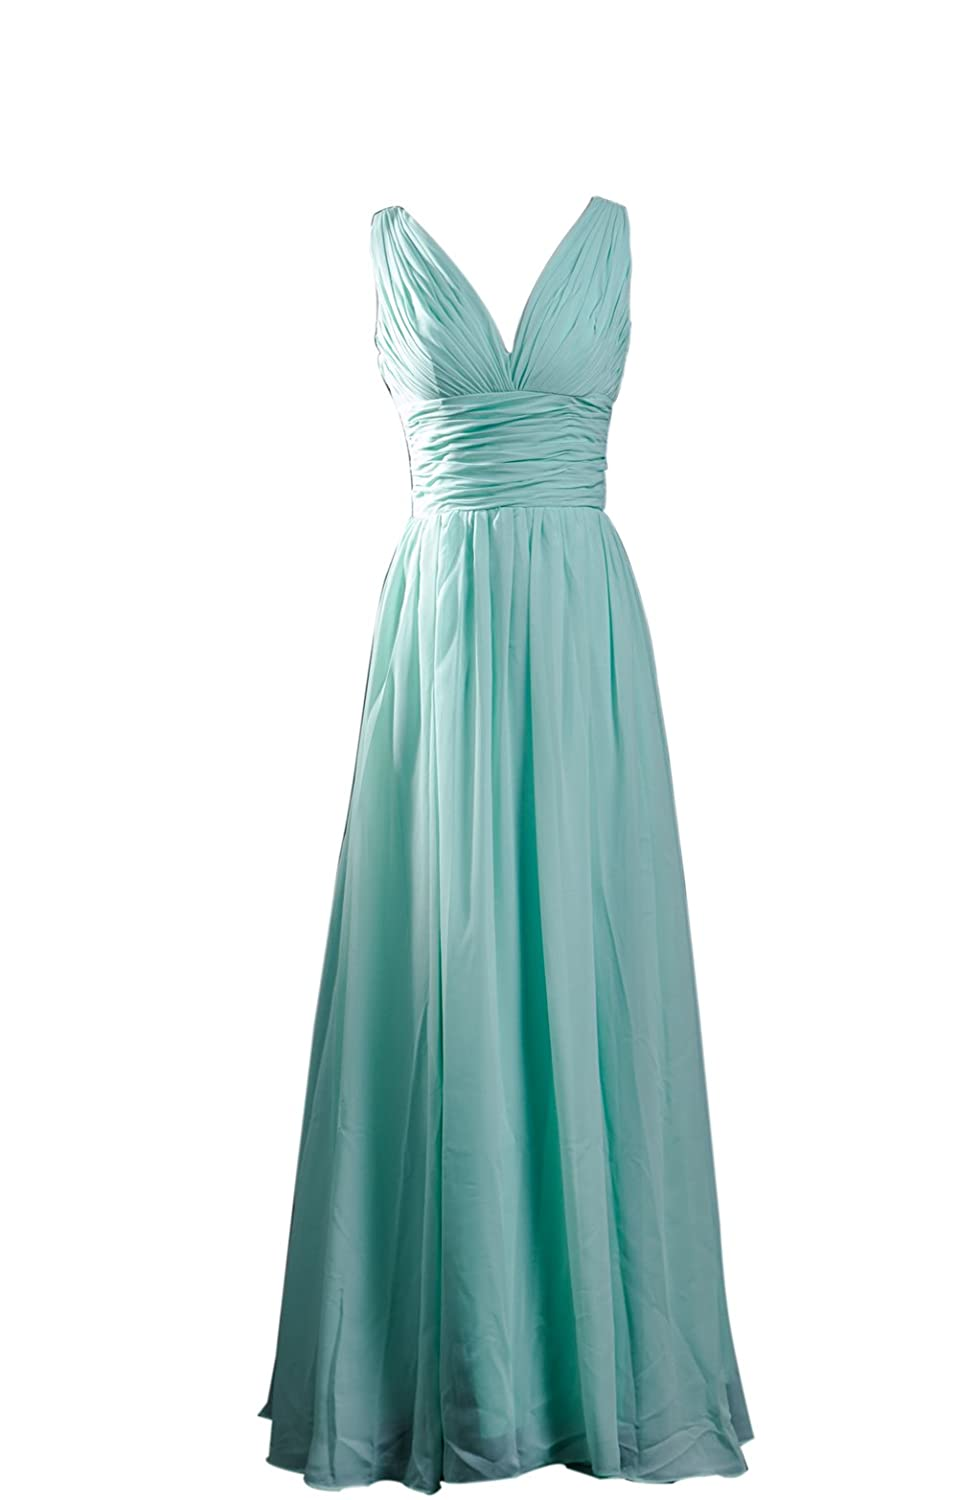 SimpleDressUK Long Chiffon Simple V-Neck Evening Prom Cocktail Dresses